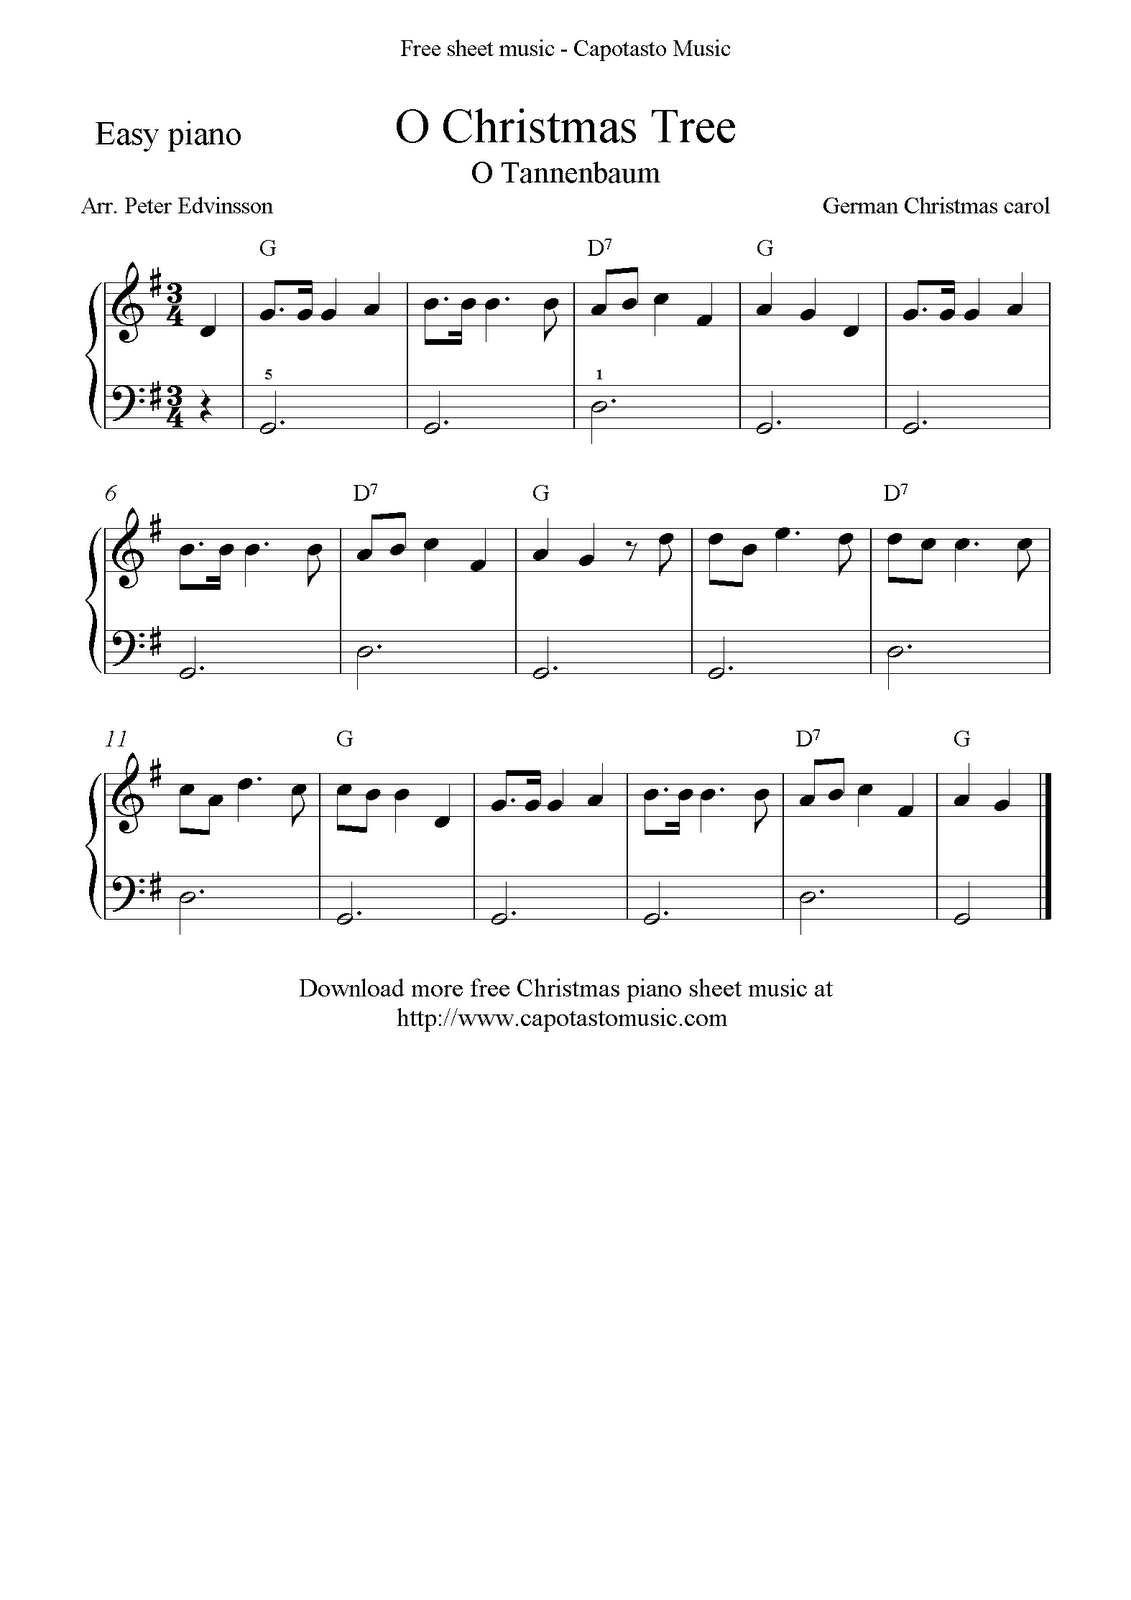 Free Sheet Music Scores: September 2011 | free online scores ...